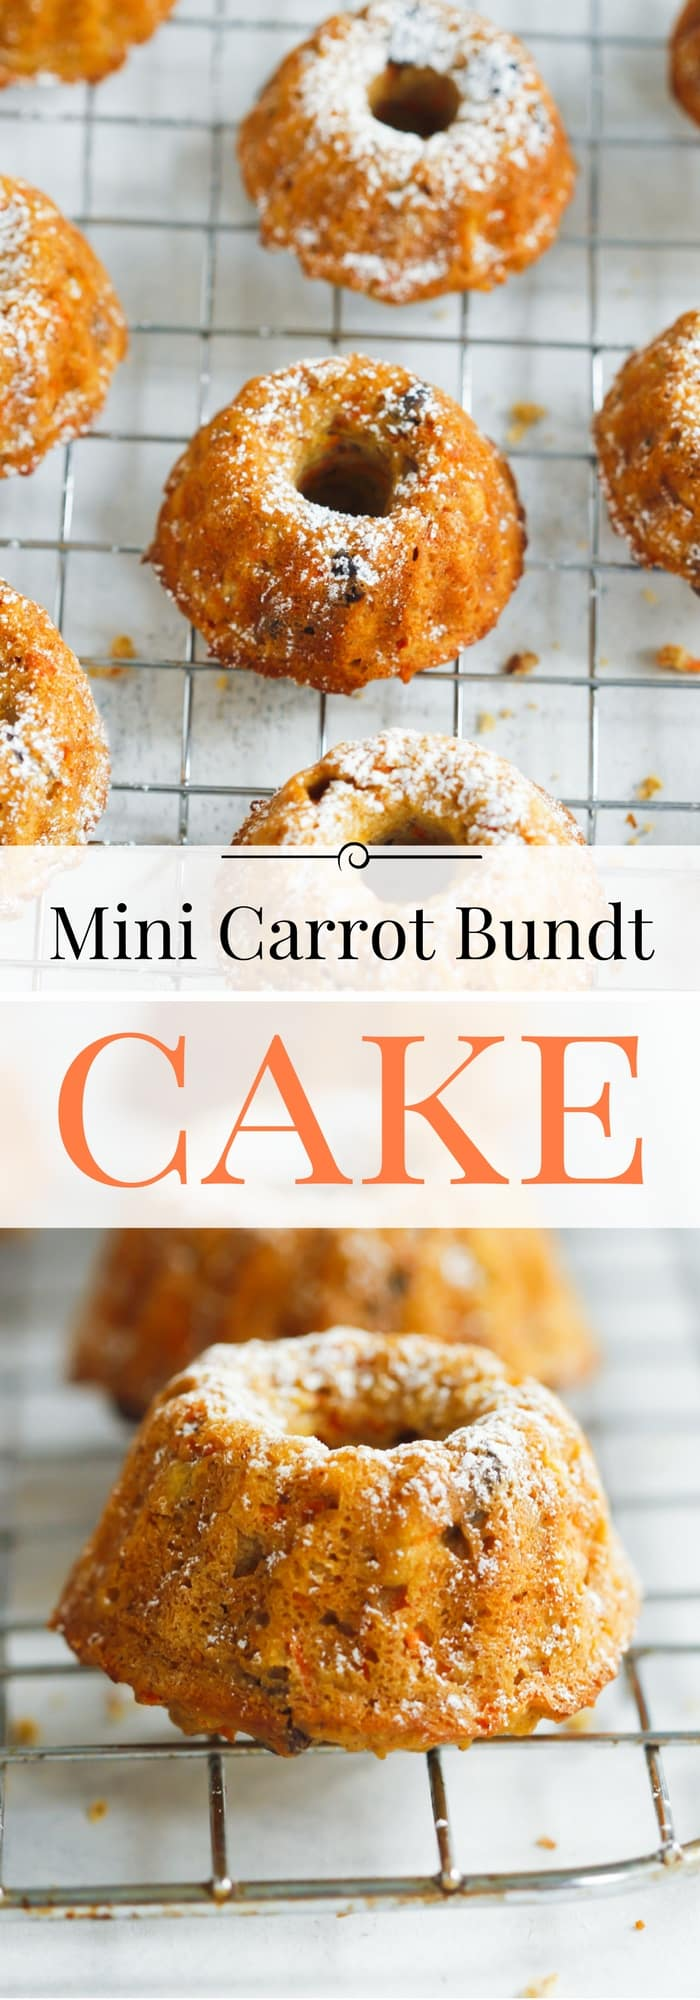 Carrot Cake Mini Bundt Recipe